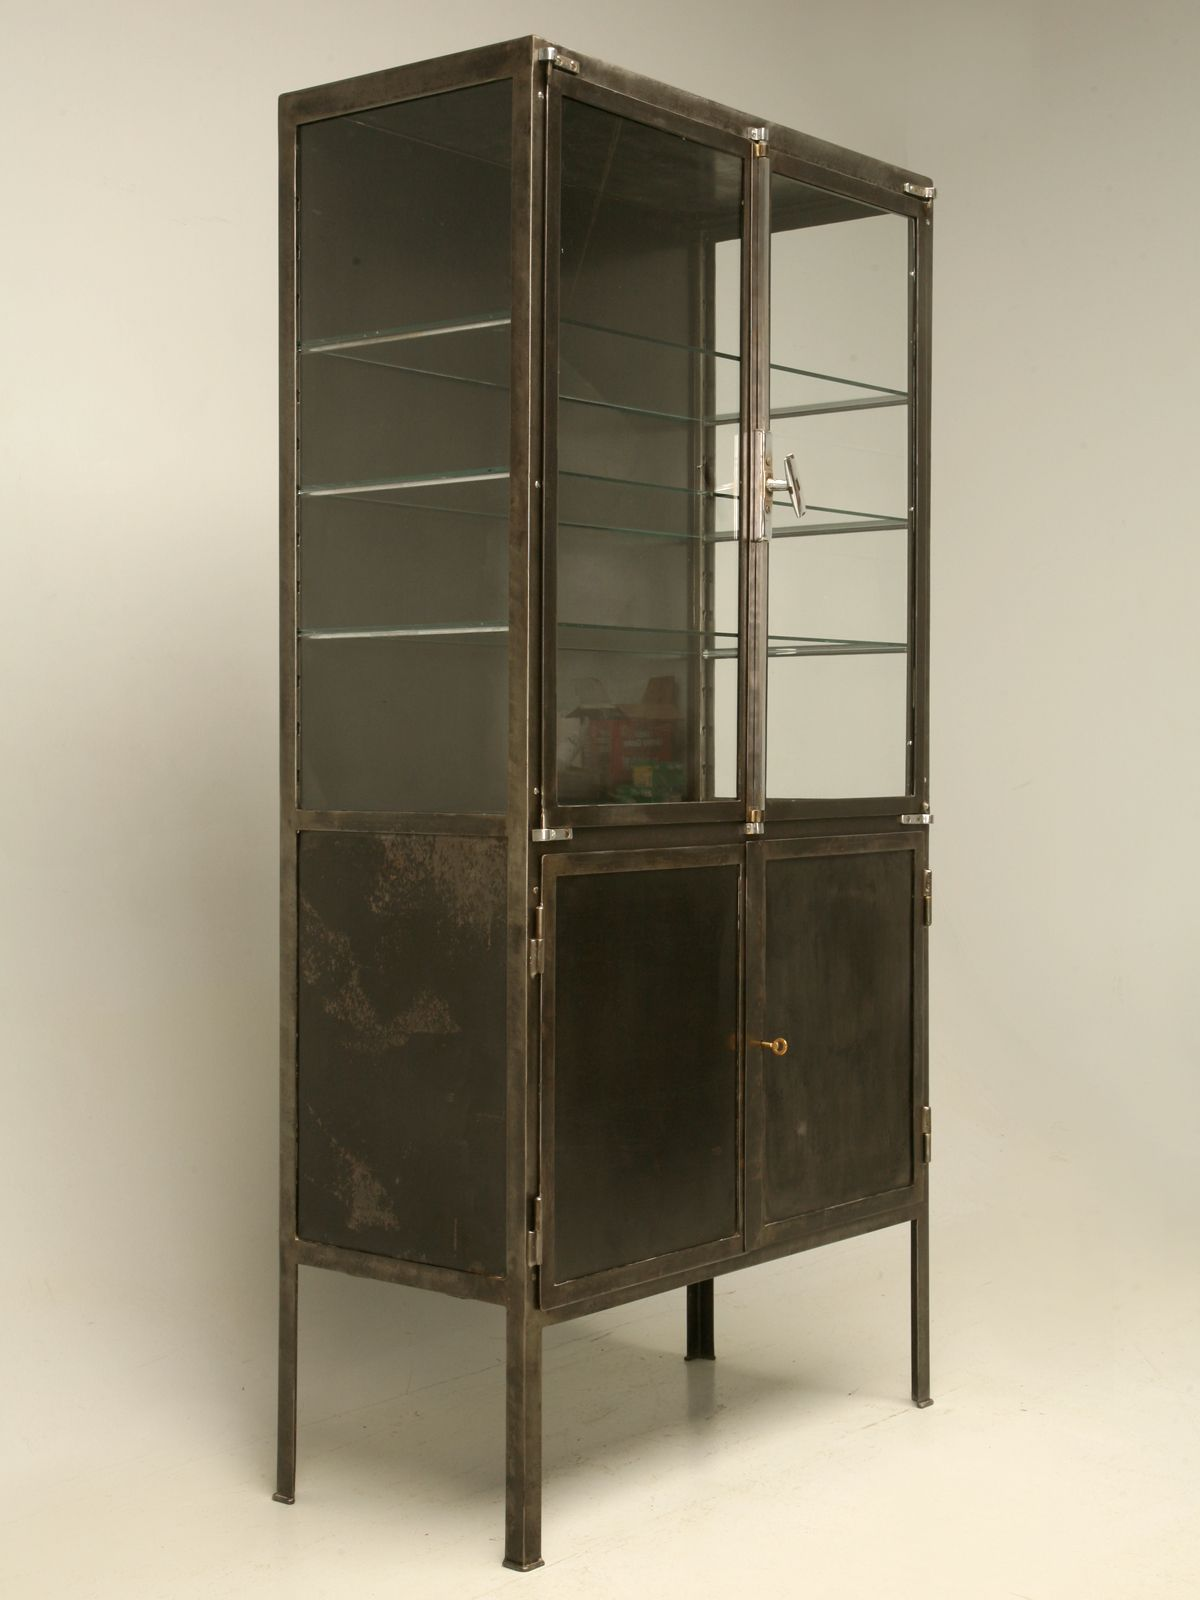 Amazing Living Room Cabinet Designs Antique Showcase Using: @shellykennedy (more Glass/shelves- The Better) Vintage